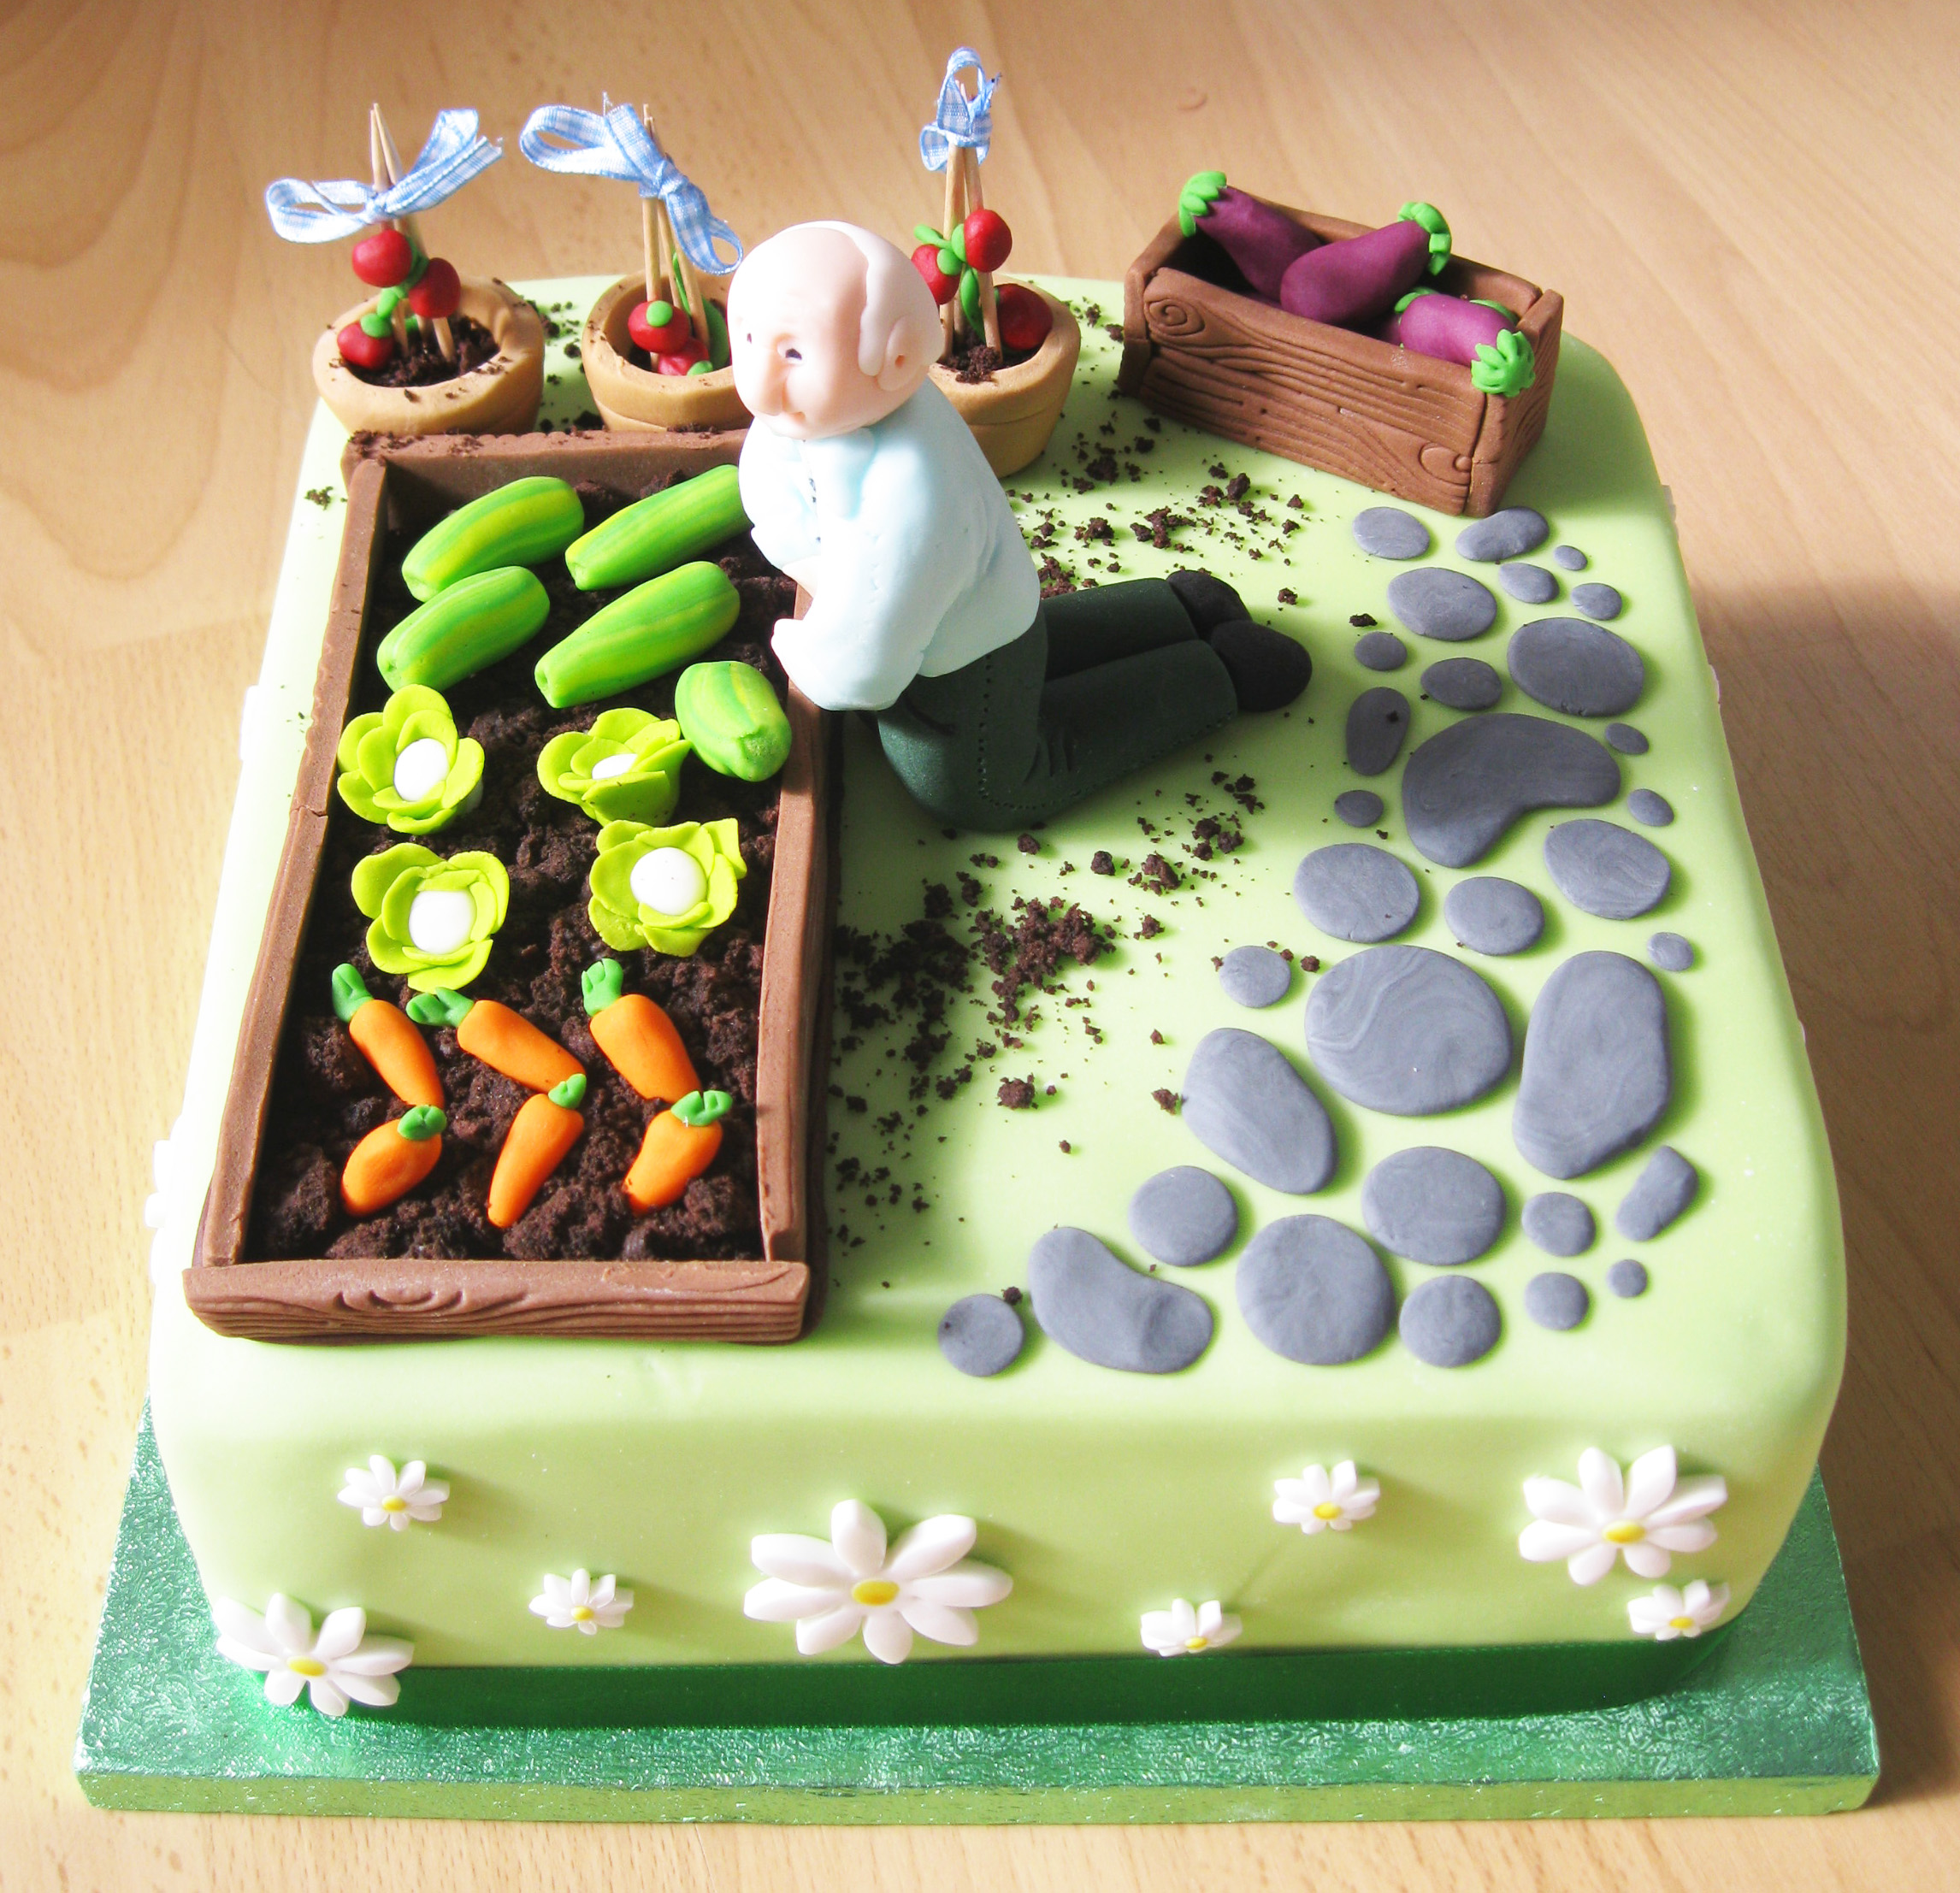 Decorating Ideas > 1000+ Images About Allotmentvegetable Cakes On Pinterest  ~ 224209_Cake Decorating Ideas Vegetables